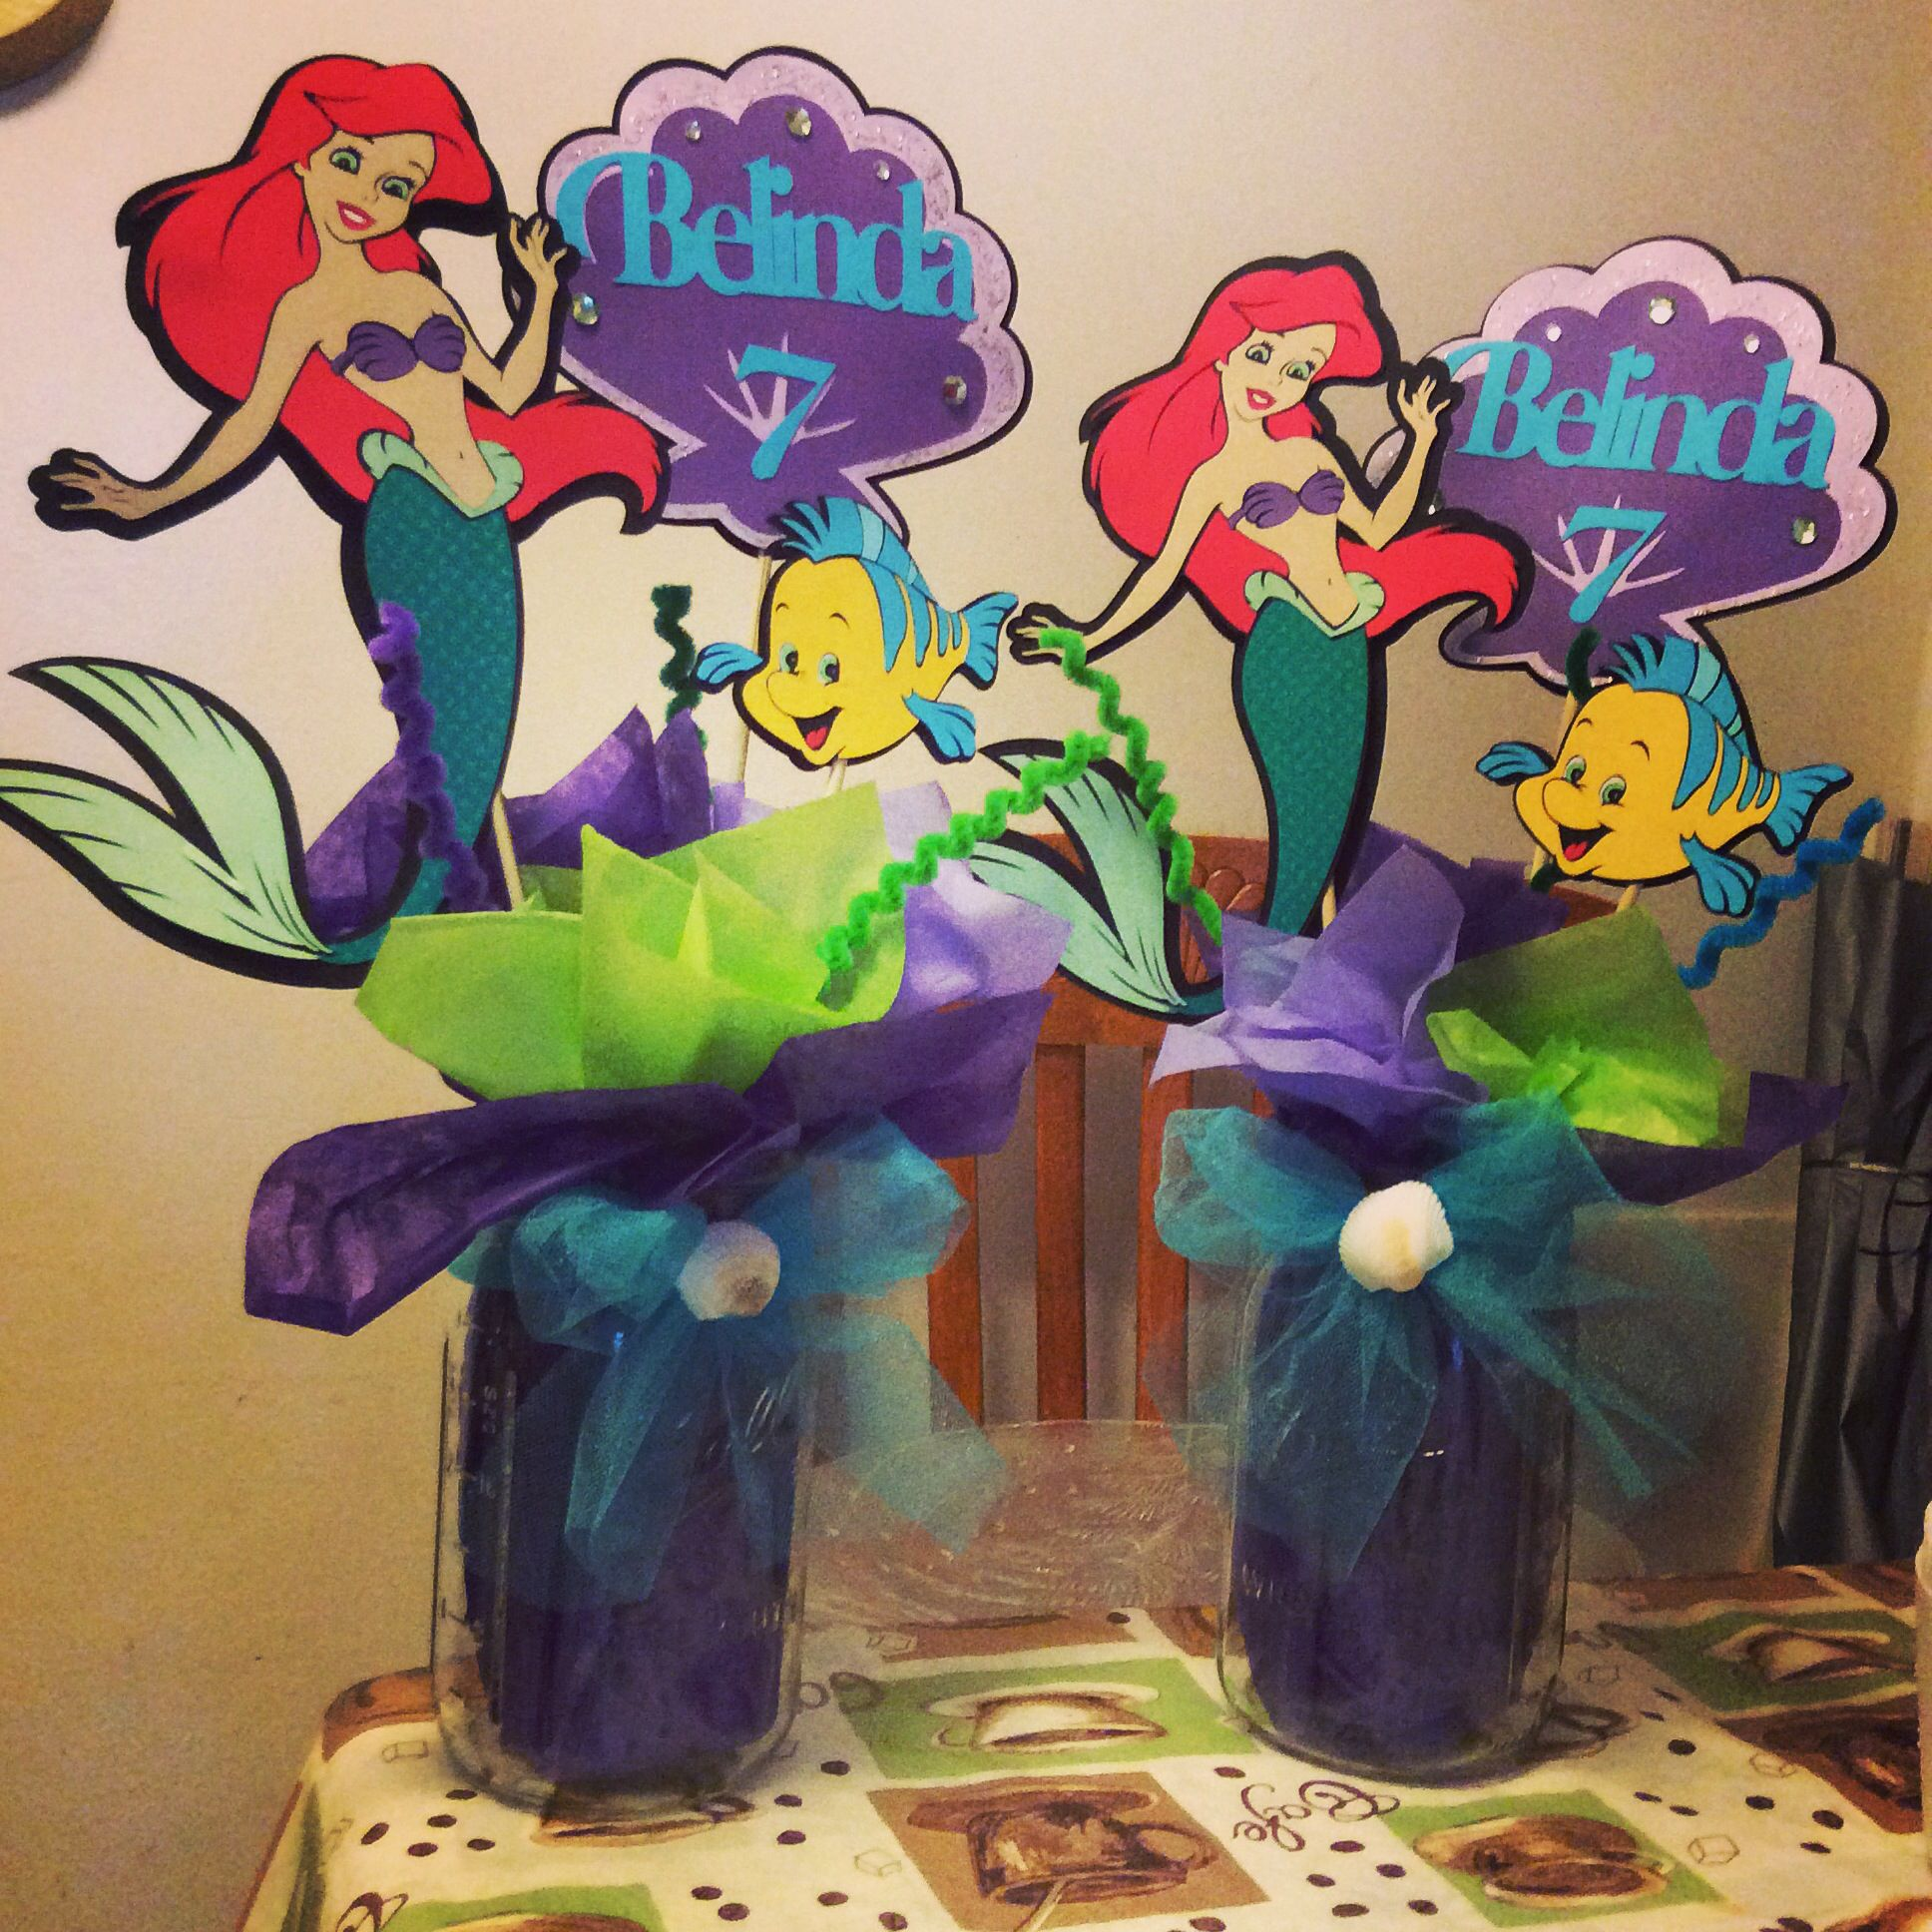 Baby/'s first birthday little mermaid purple one wood center pieces